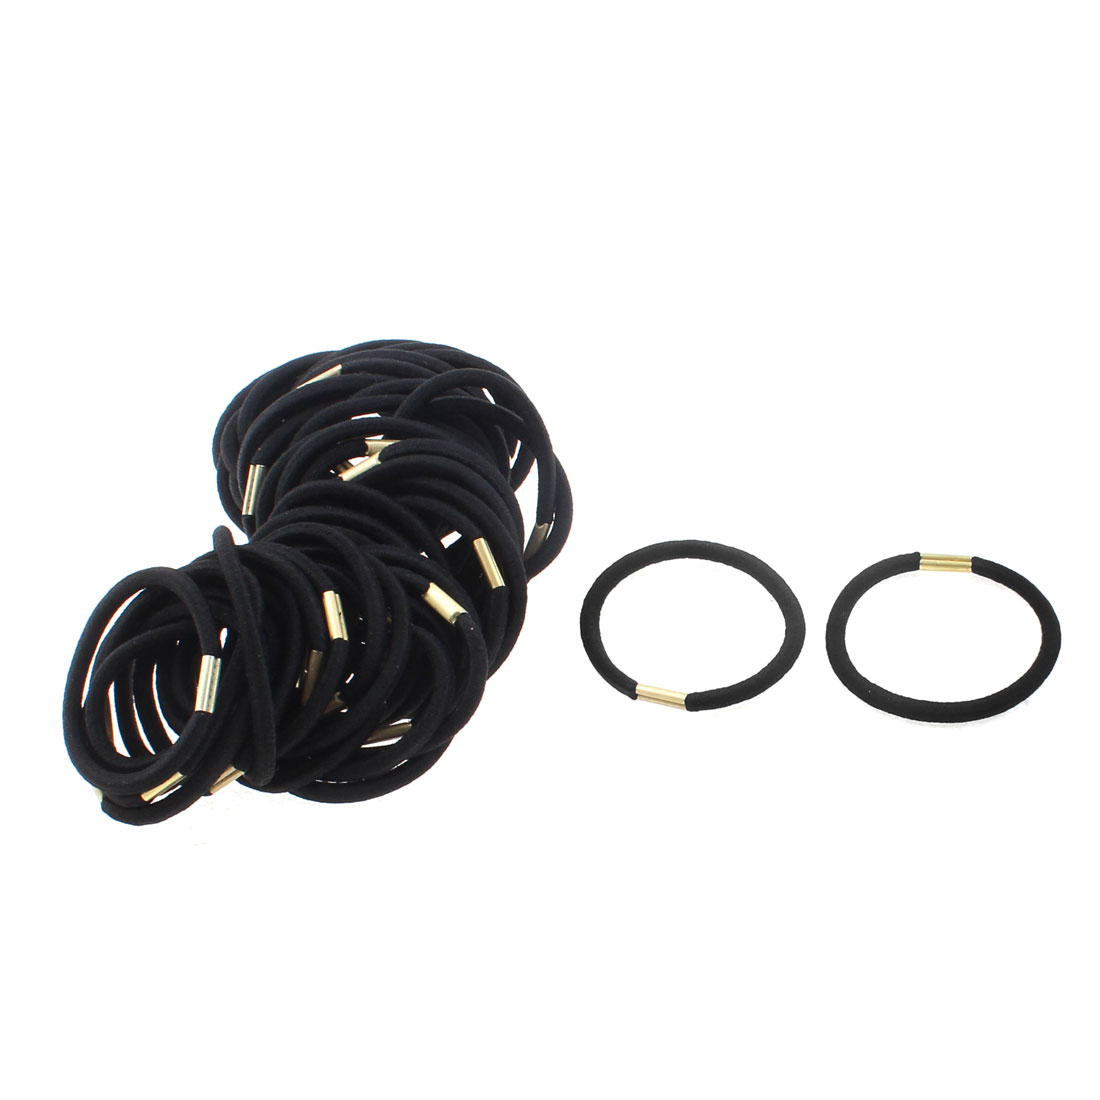 Women DIY Craft Elastic Hair Tie Rope Ring Band Hairband Ponytail Holder Black 50pcs